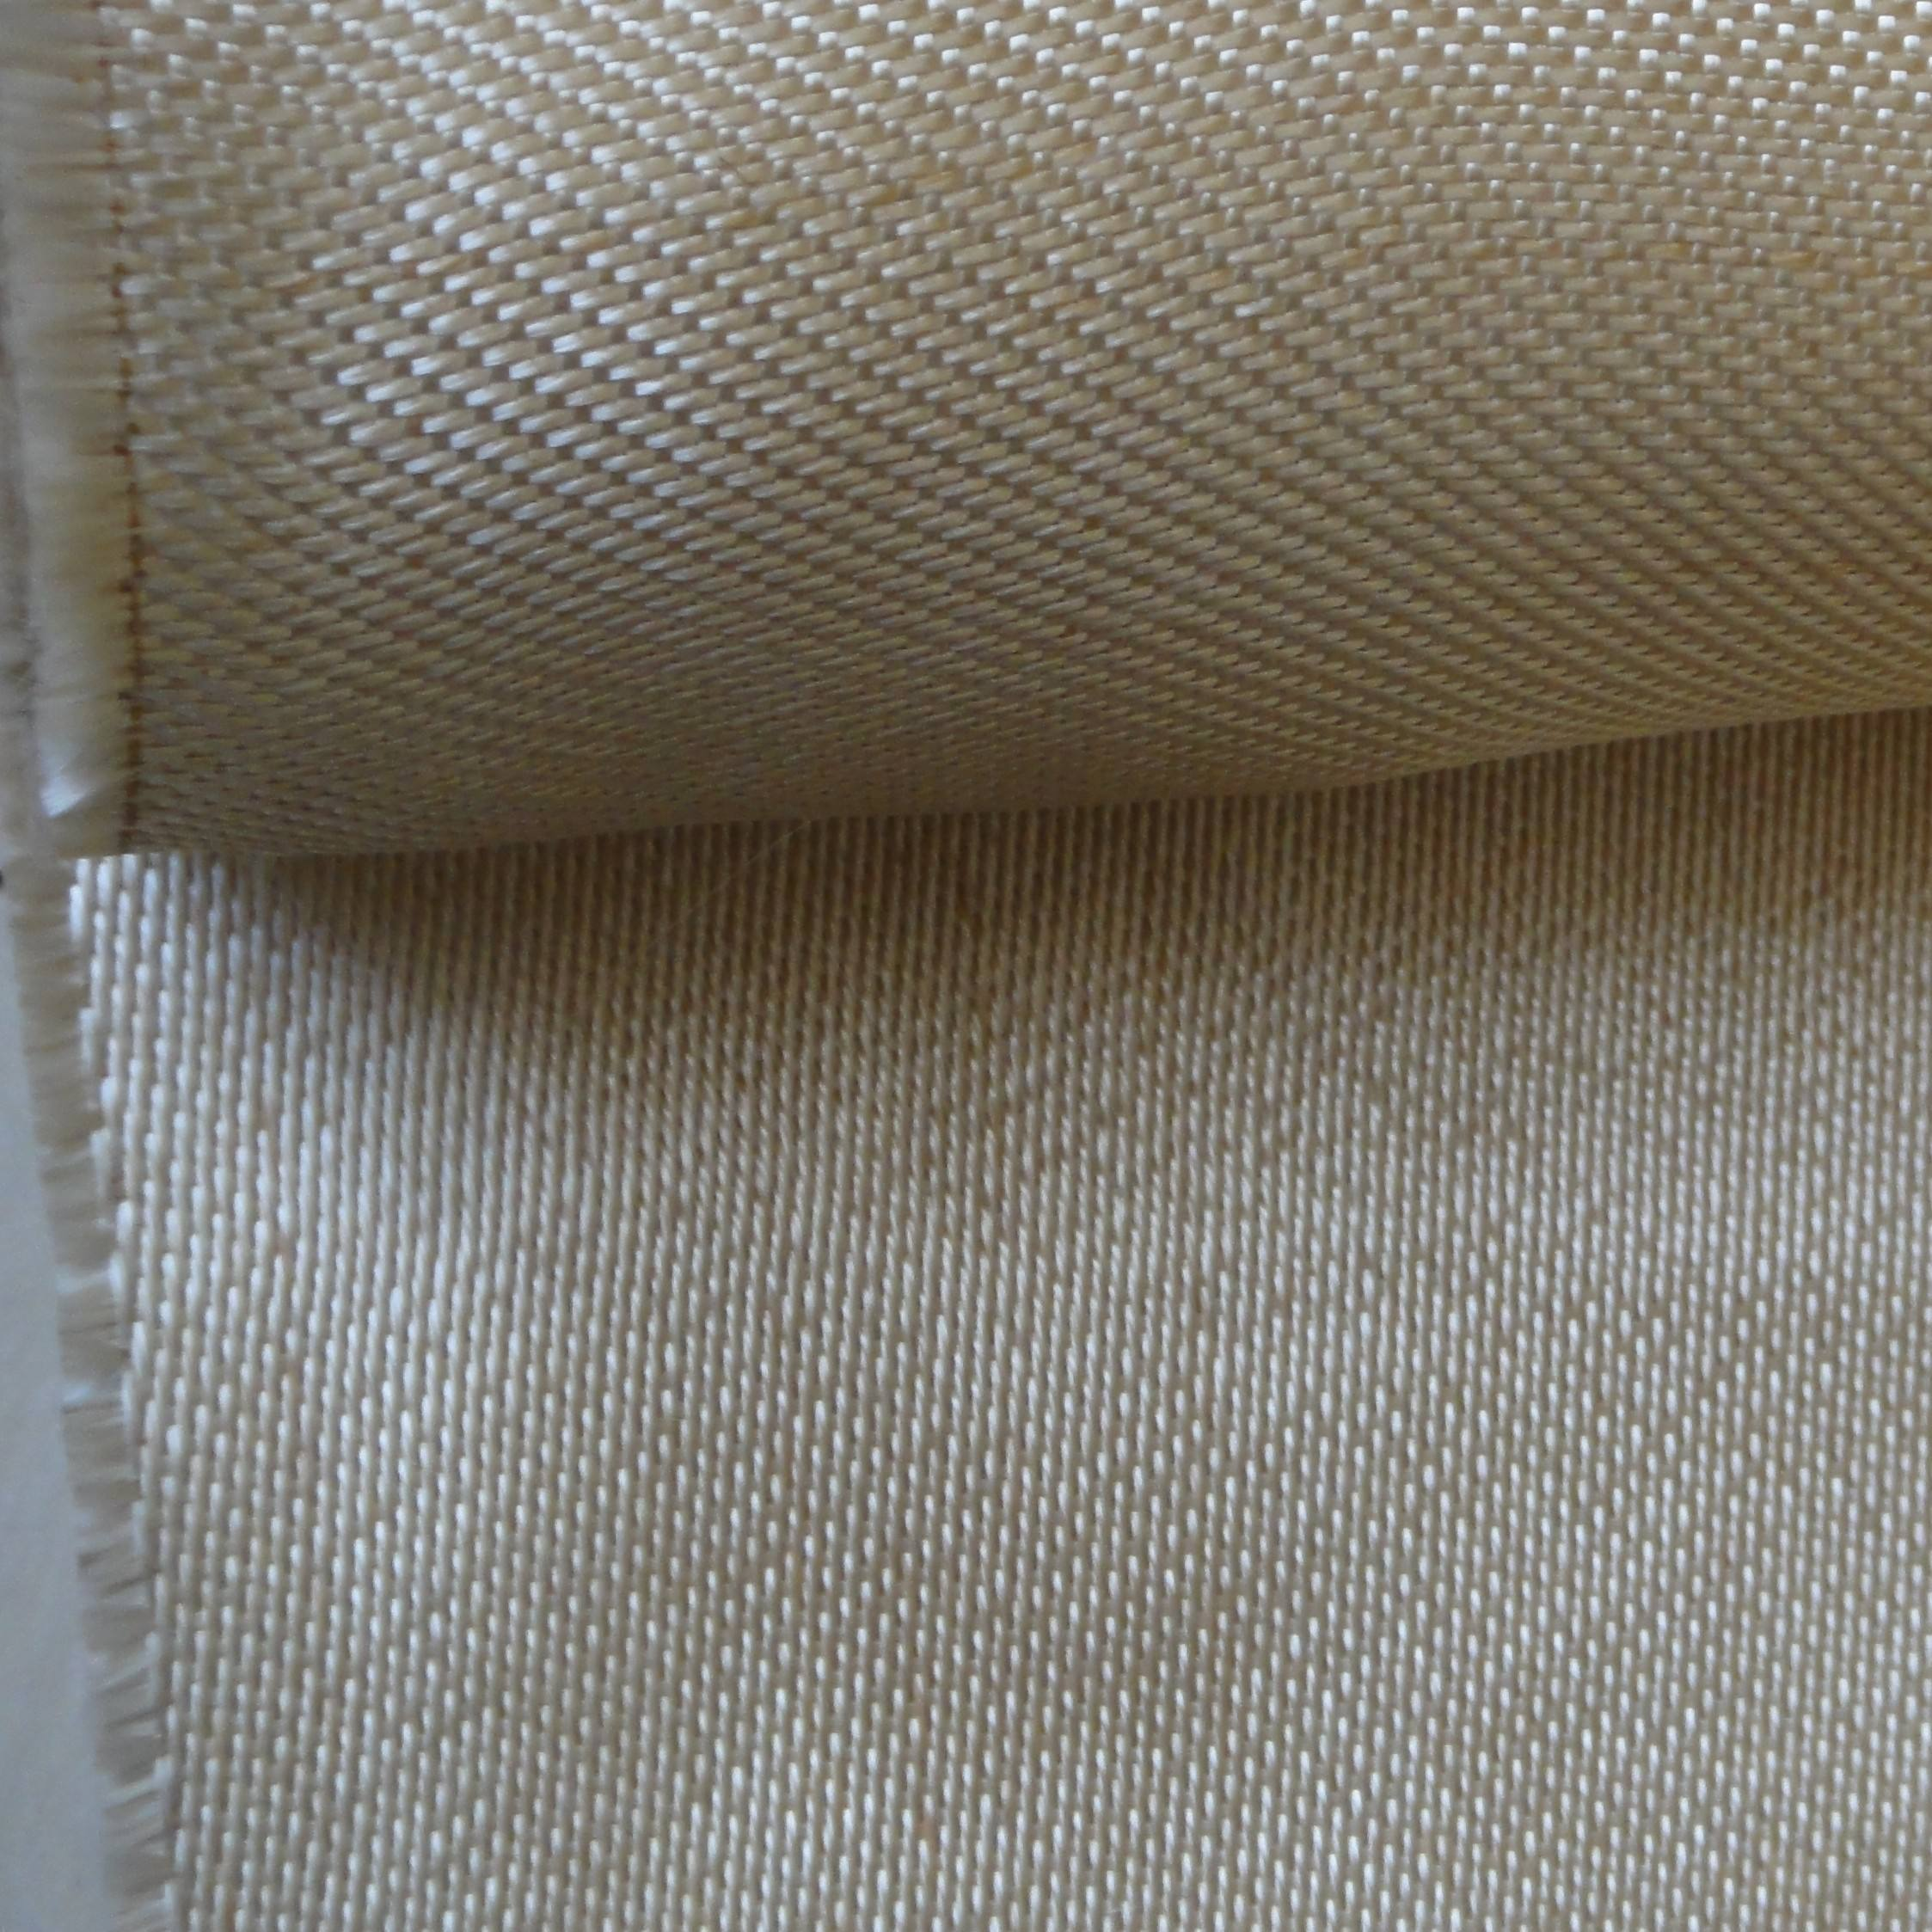 1mm 840g/m2 satin weave gold color fire proof blanket heat treated fiberglass fabric